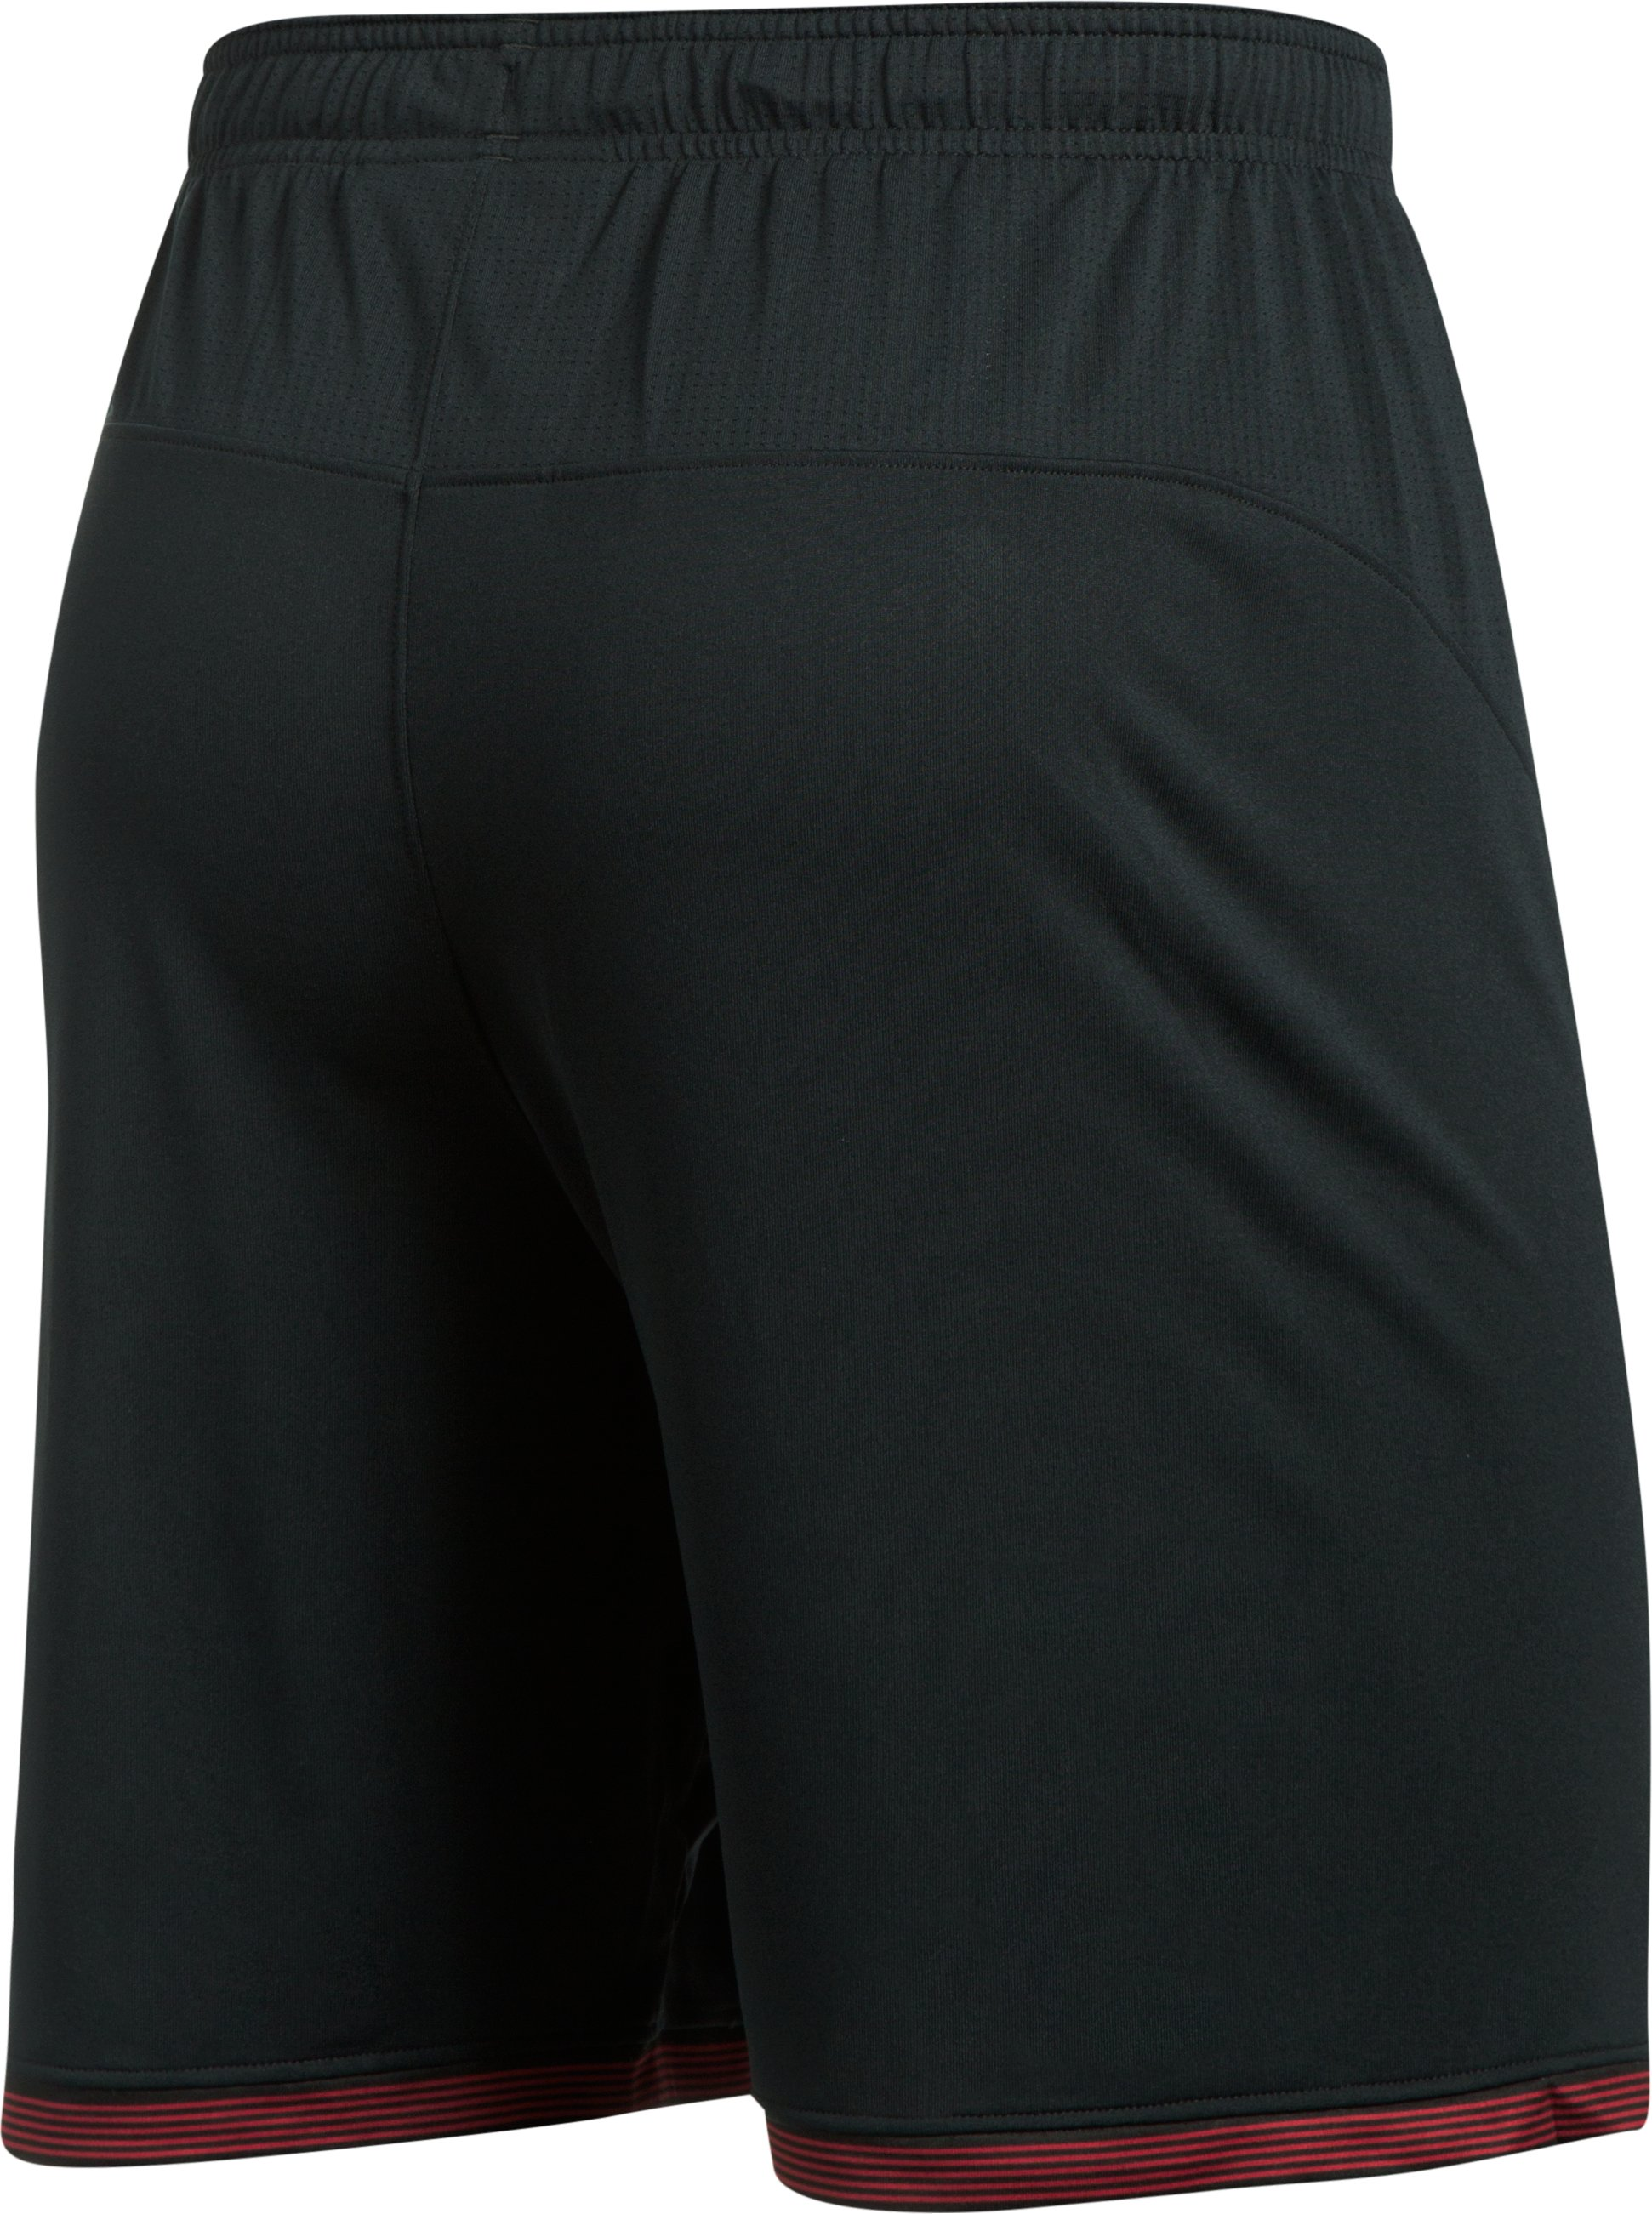 Men's Southampton Rep Shorts, Black , undefined